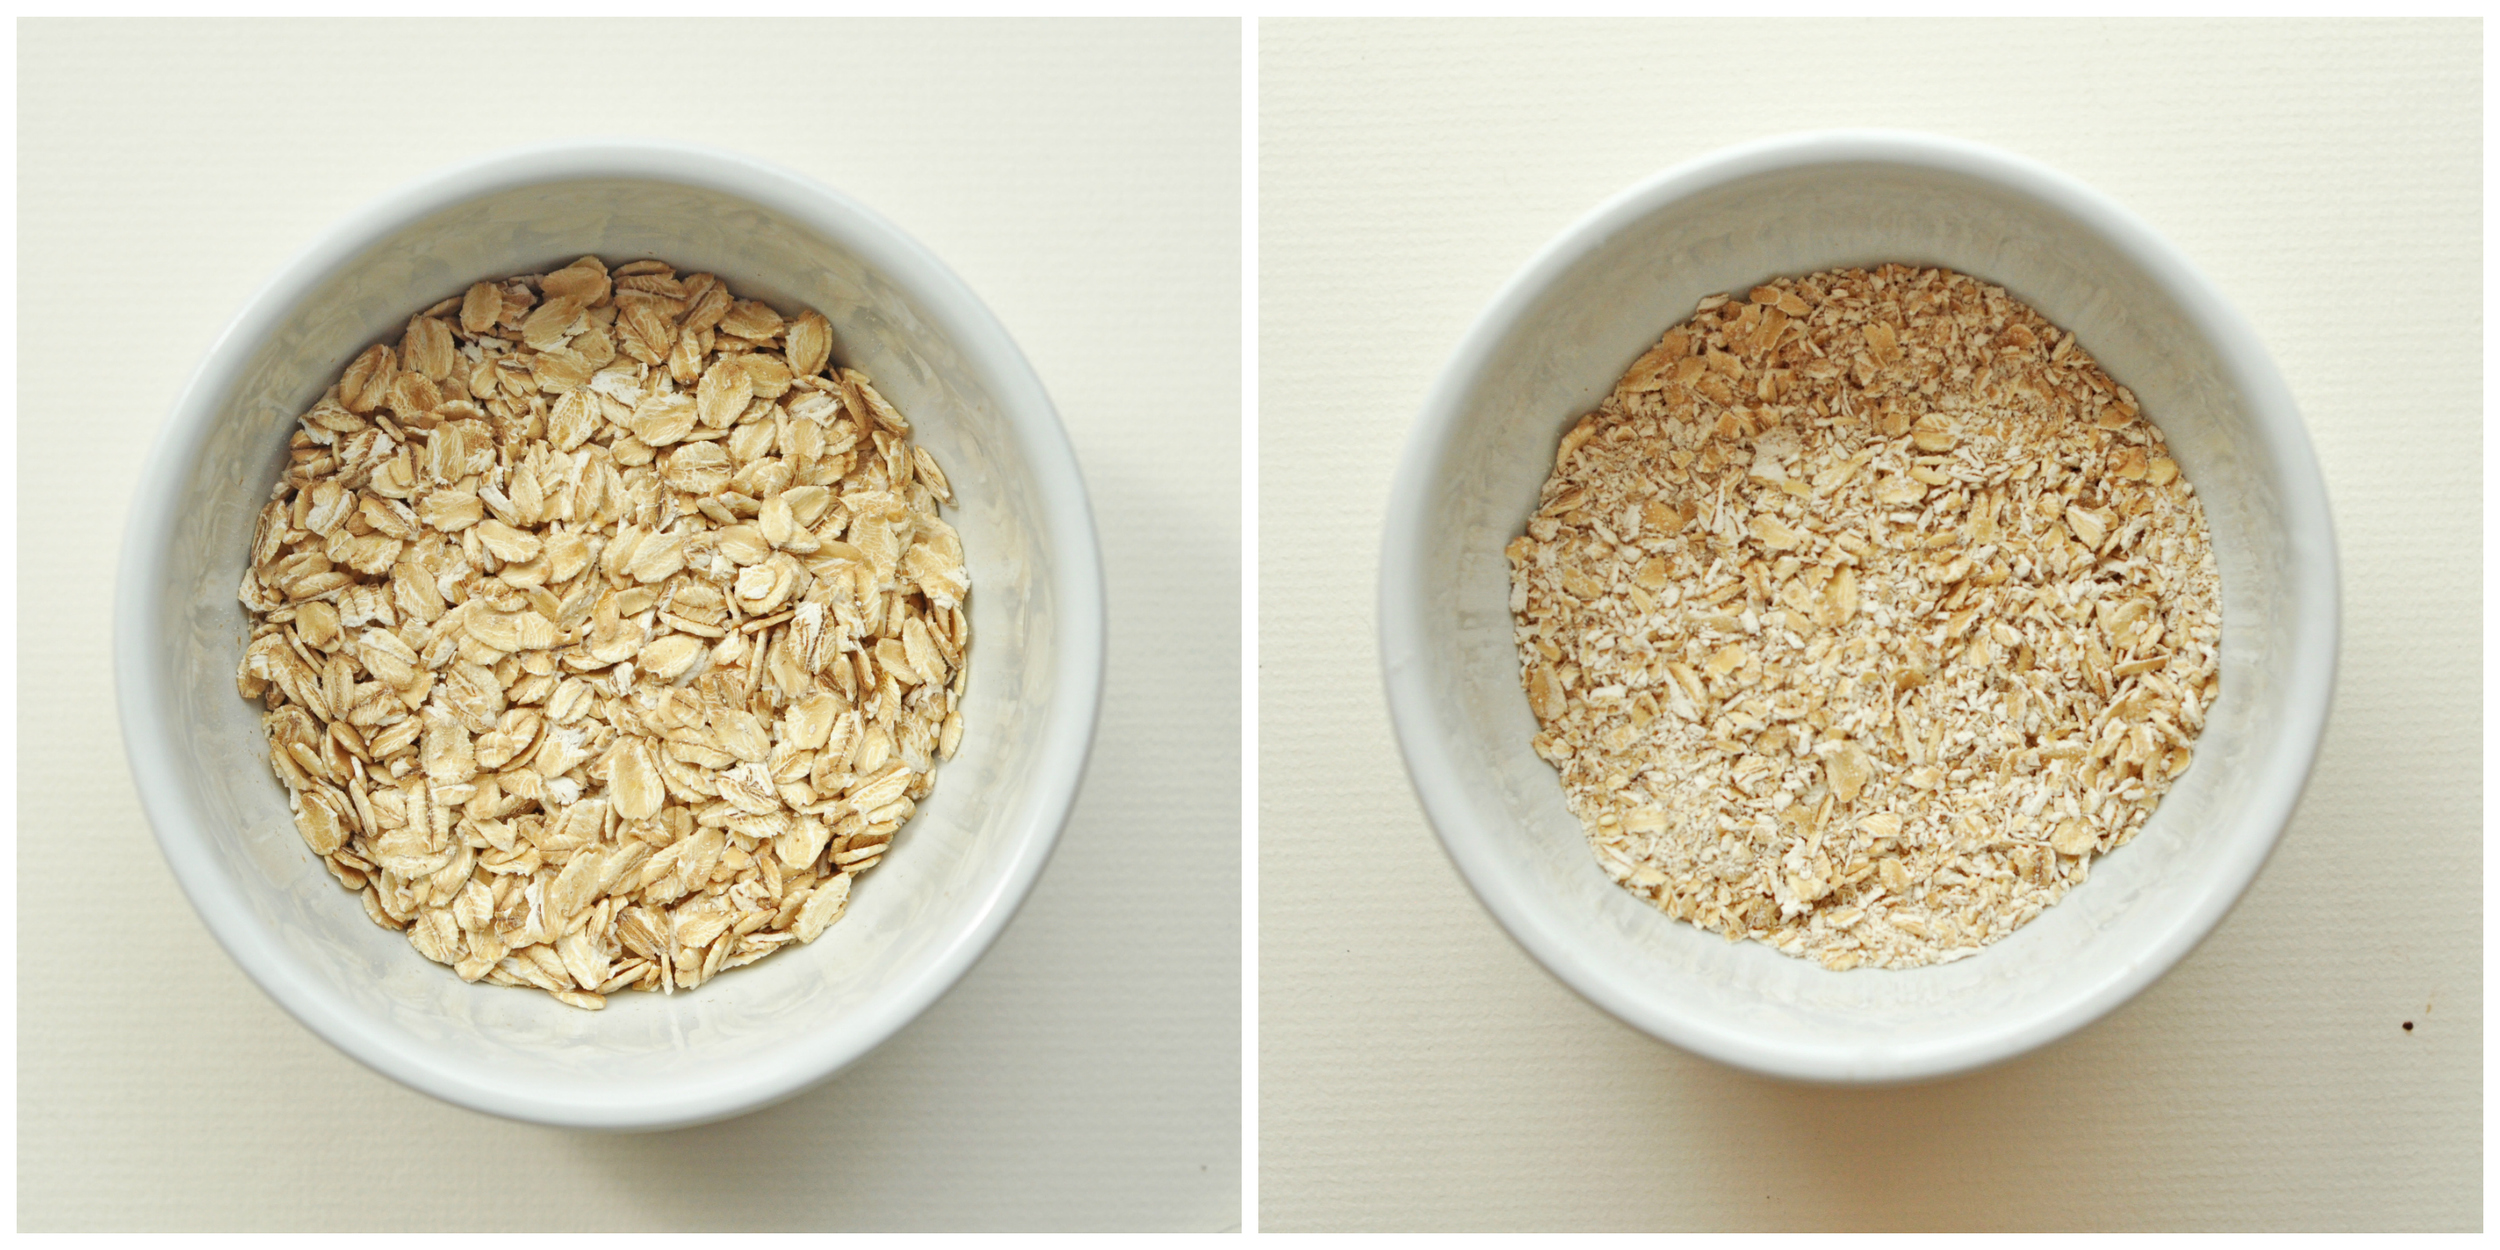 gluten free oats- the whole oats and the same oats processed into finer pieces.